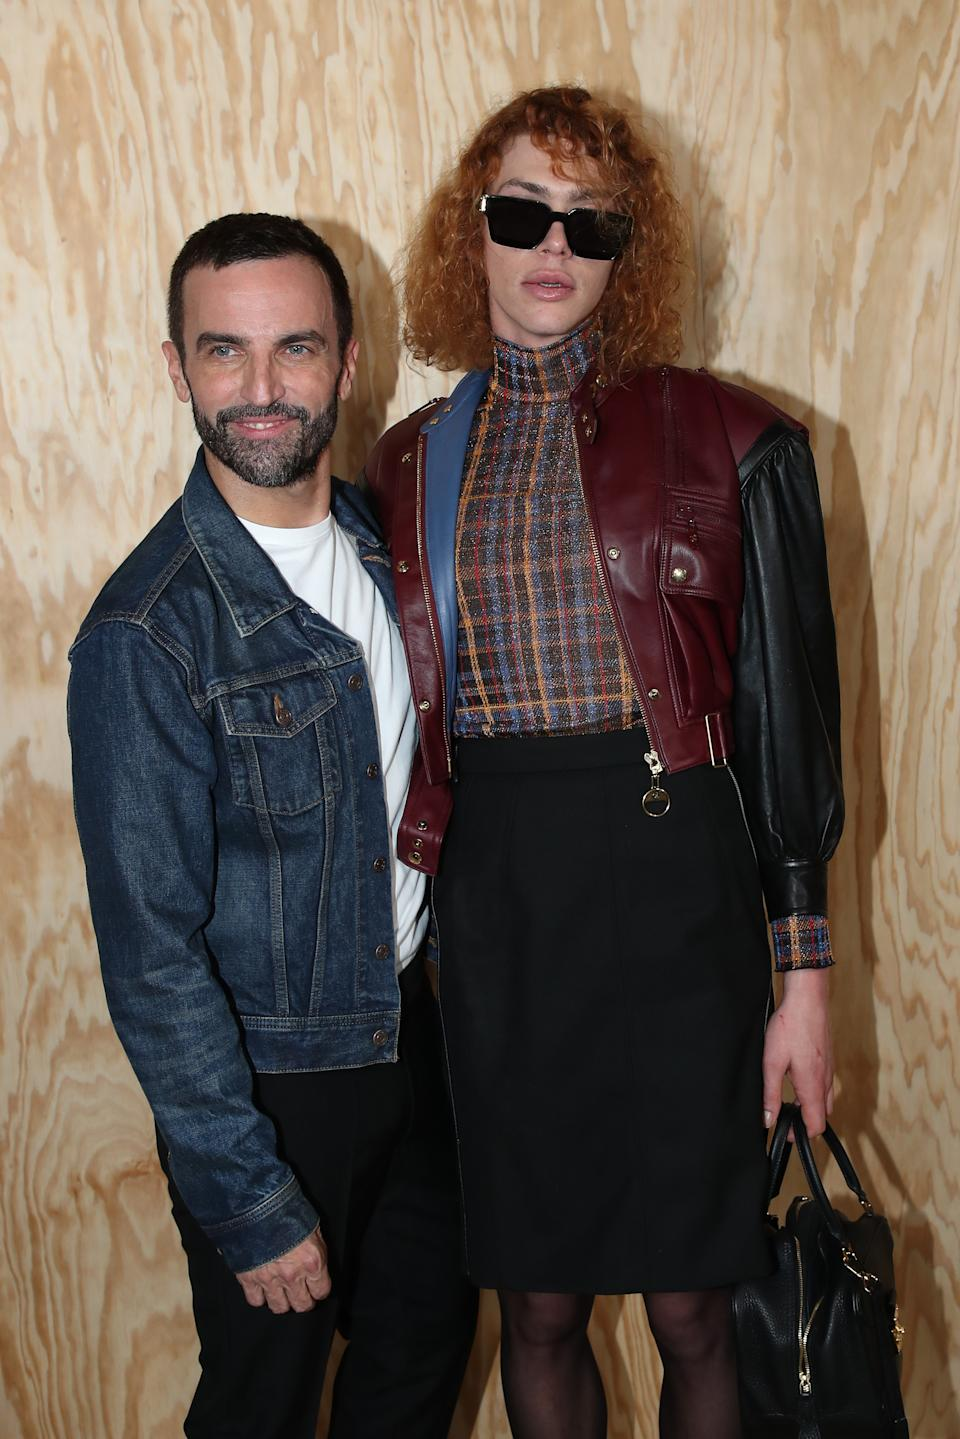 PStylist of Vuitton, Nicolas Ghesquiere and singer of the show Sophie Xeon